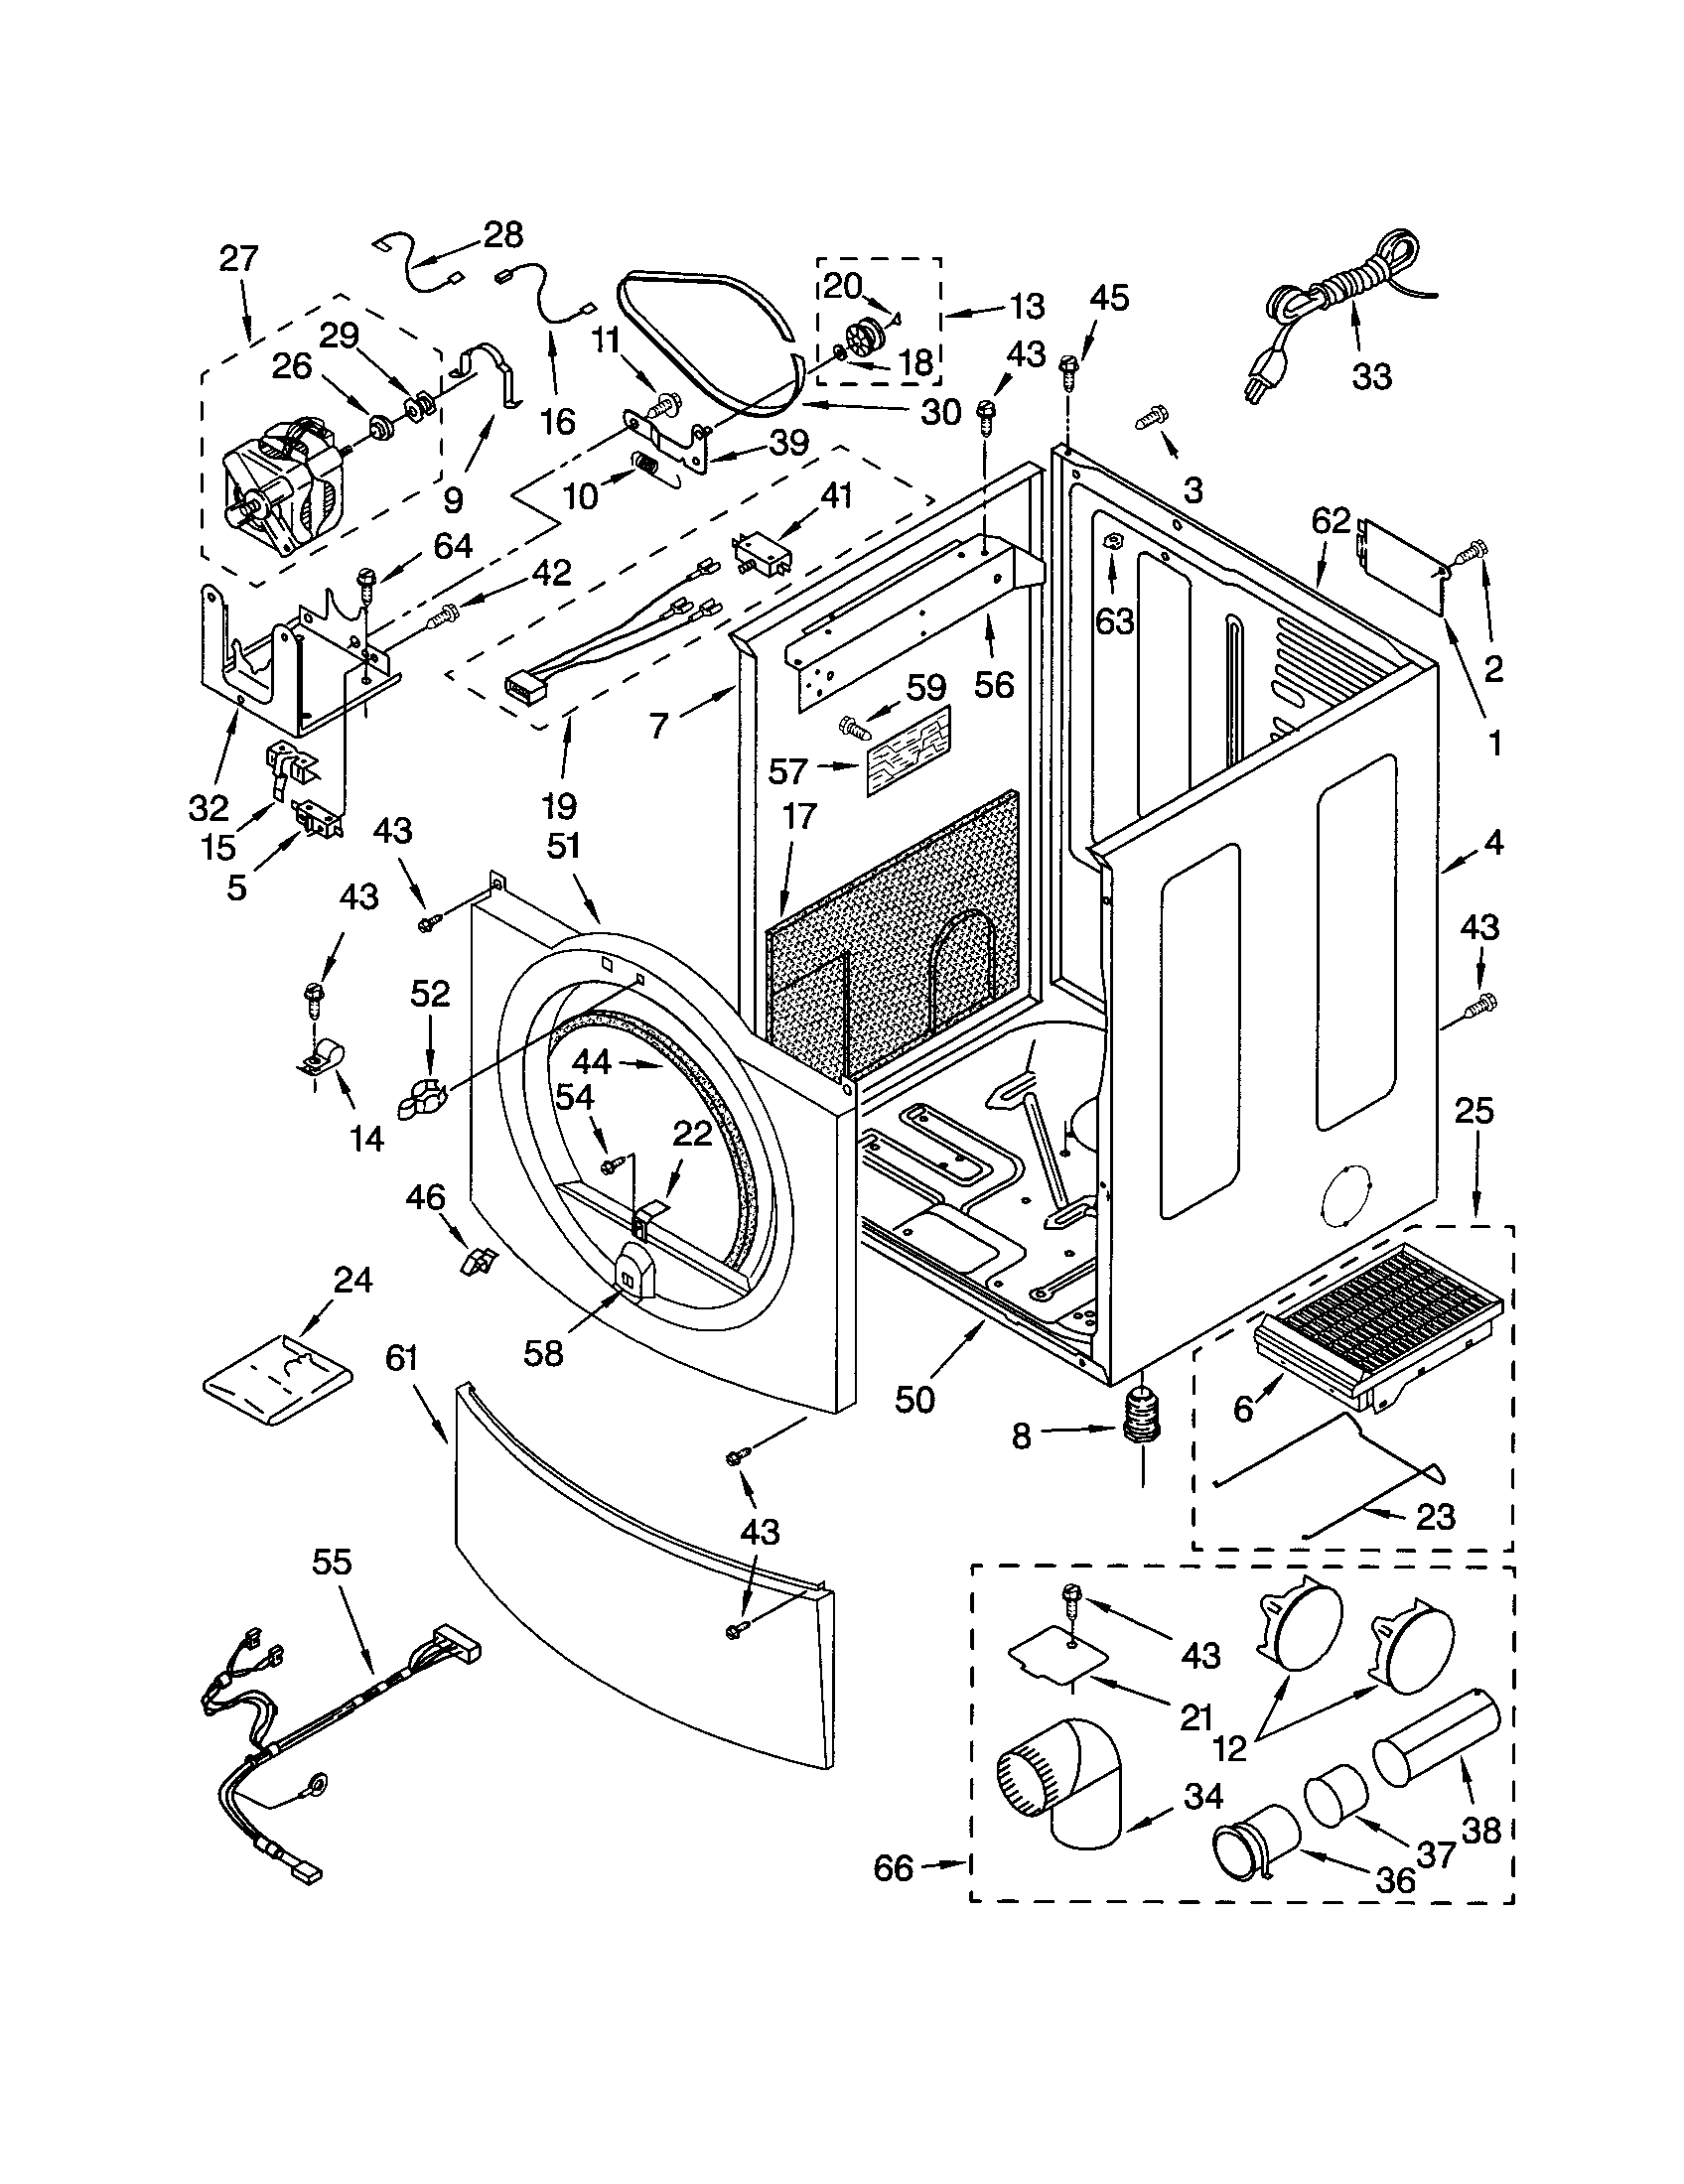 CABINET Diagram & Parts List for Model 11092824100 Kenmore